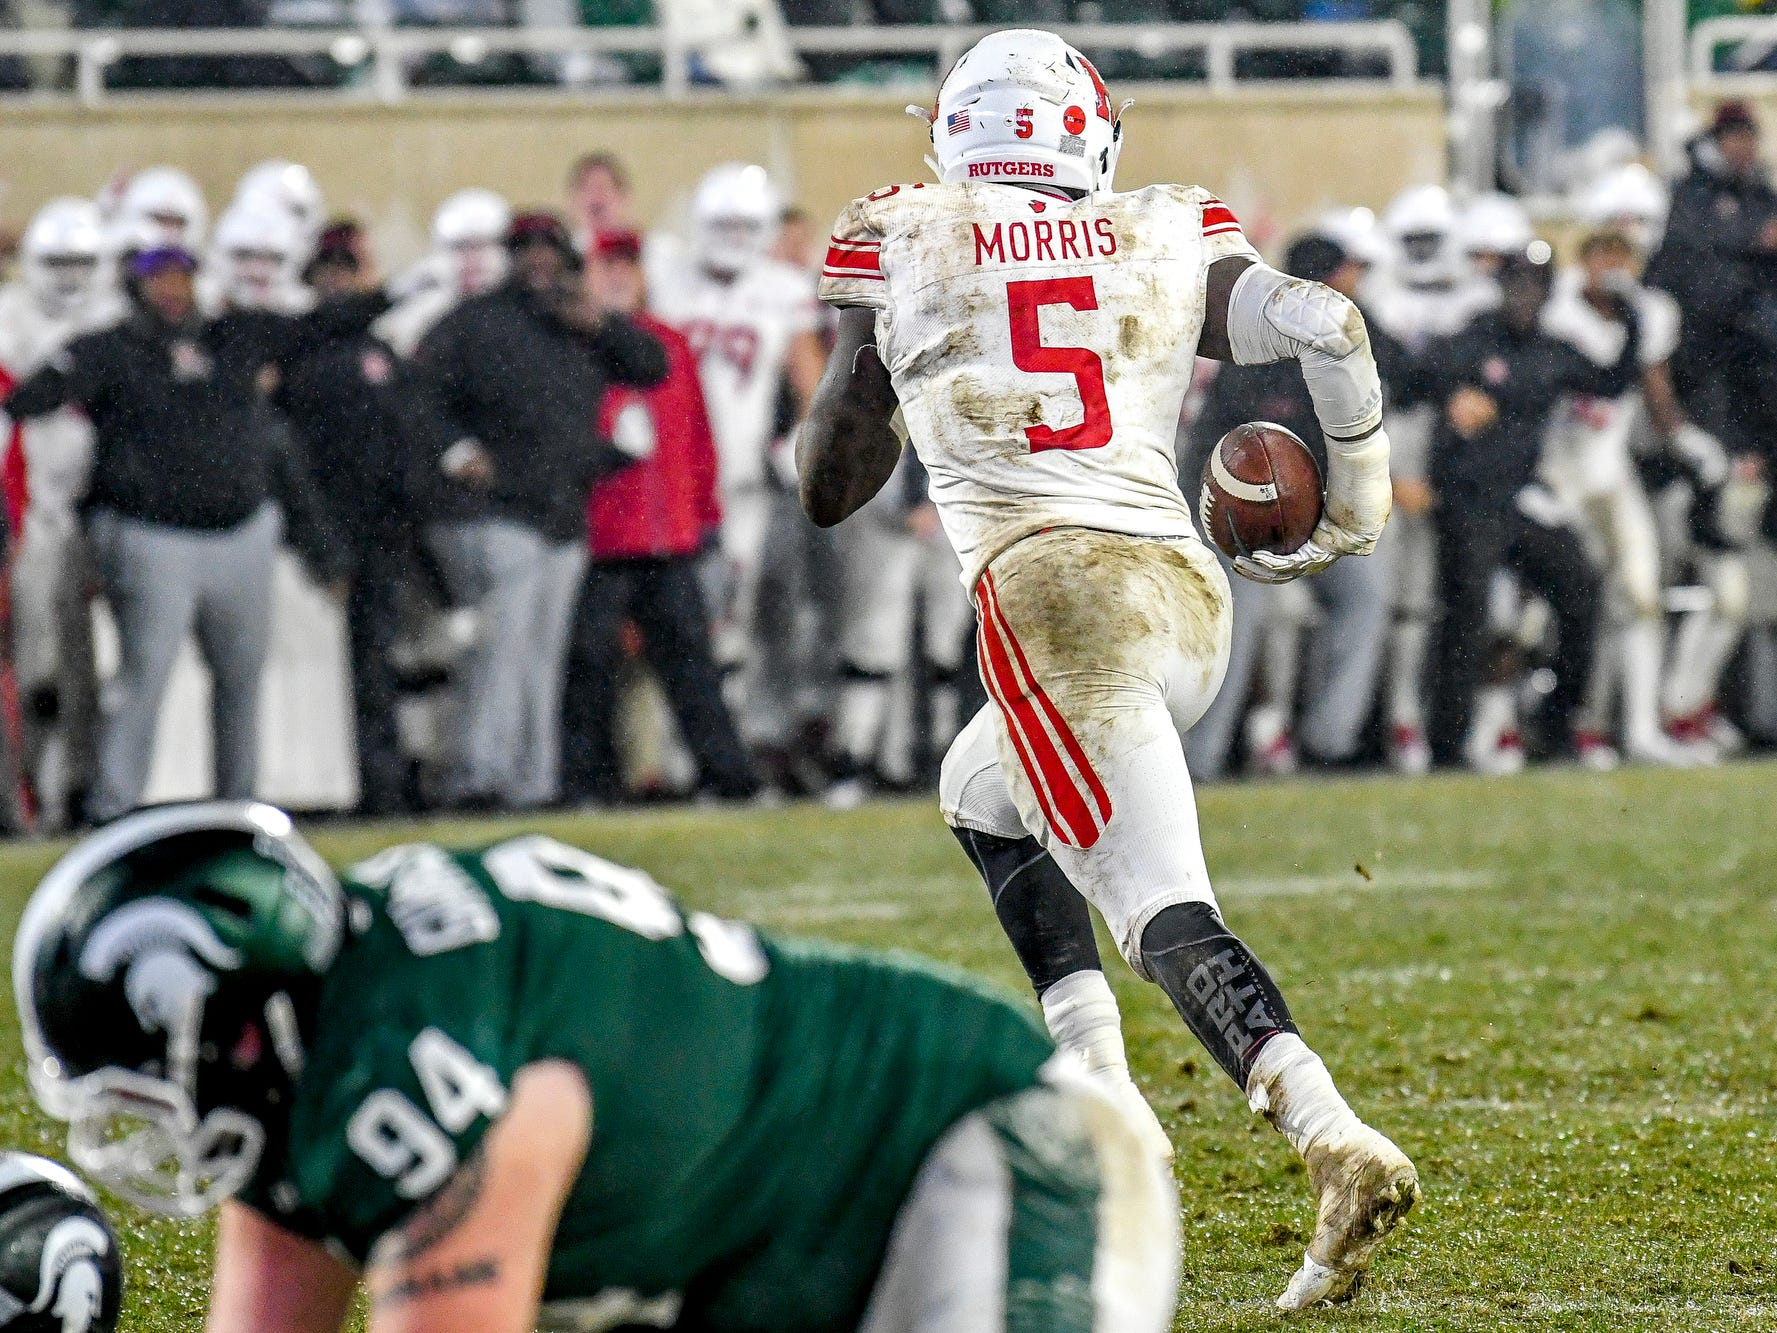 Rutgers Trevor Morris runs with the ball after an interception on a Michigan State fake field goal attempt during the second quarter on Saturday, Nov. 24, 2018, at Spartan Stadium in East Lansing.